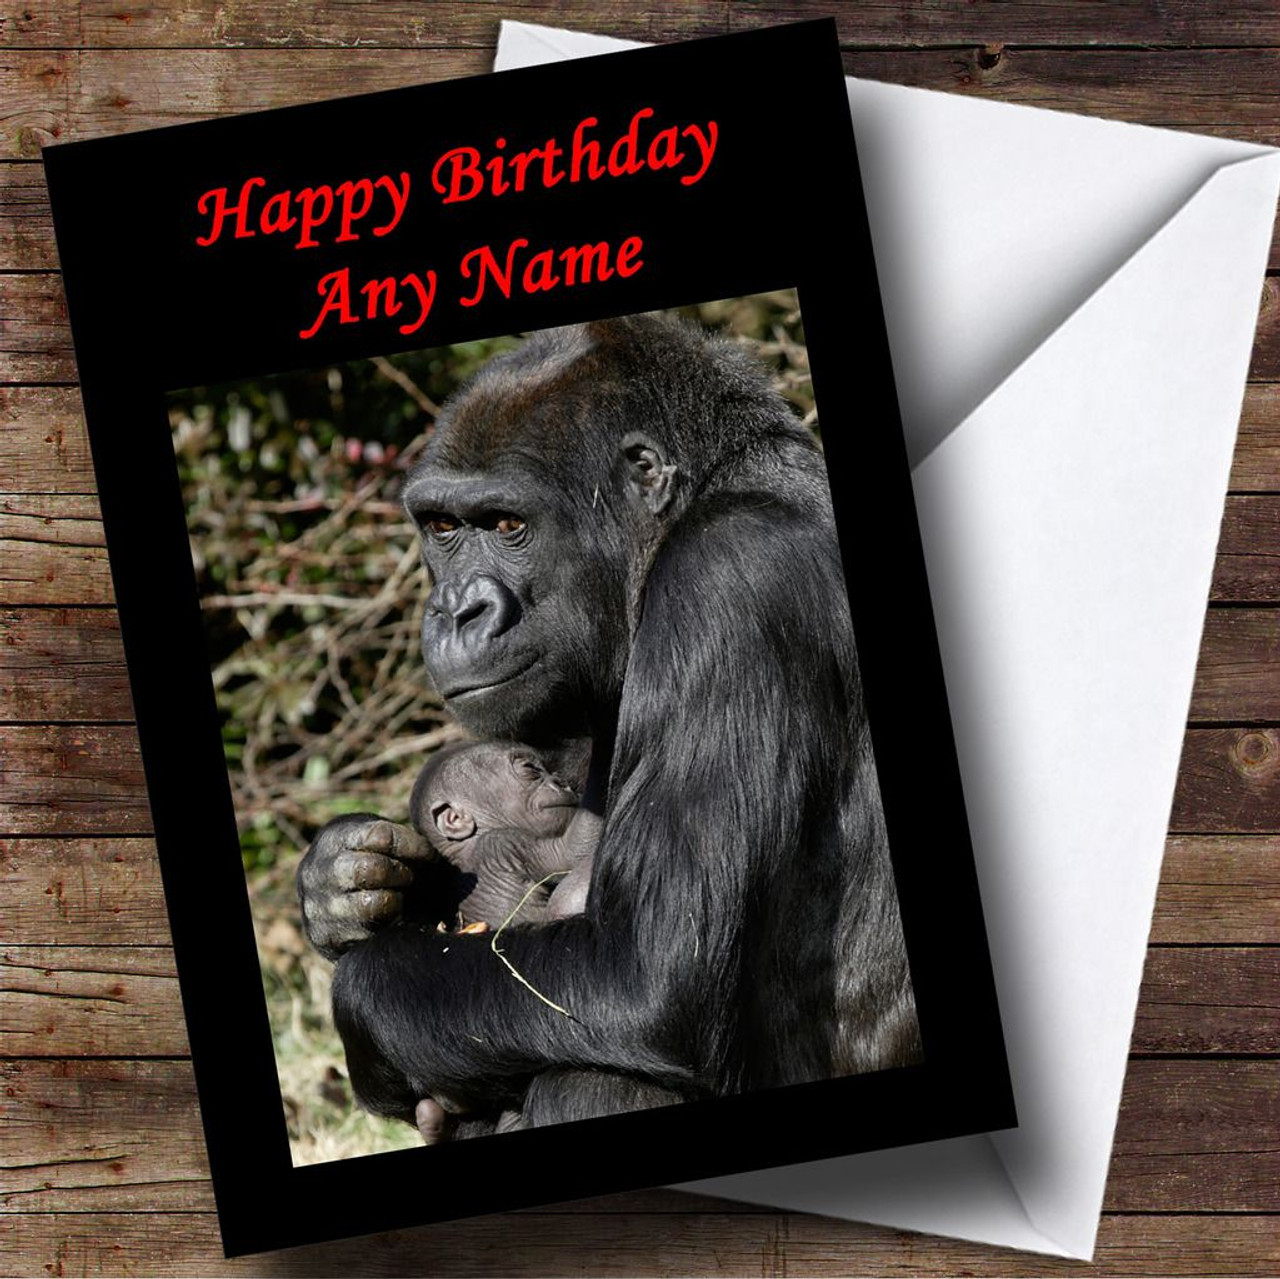 Gorilla Cuddling Baby Personalised Birthday Card